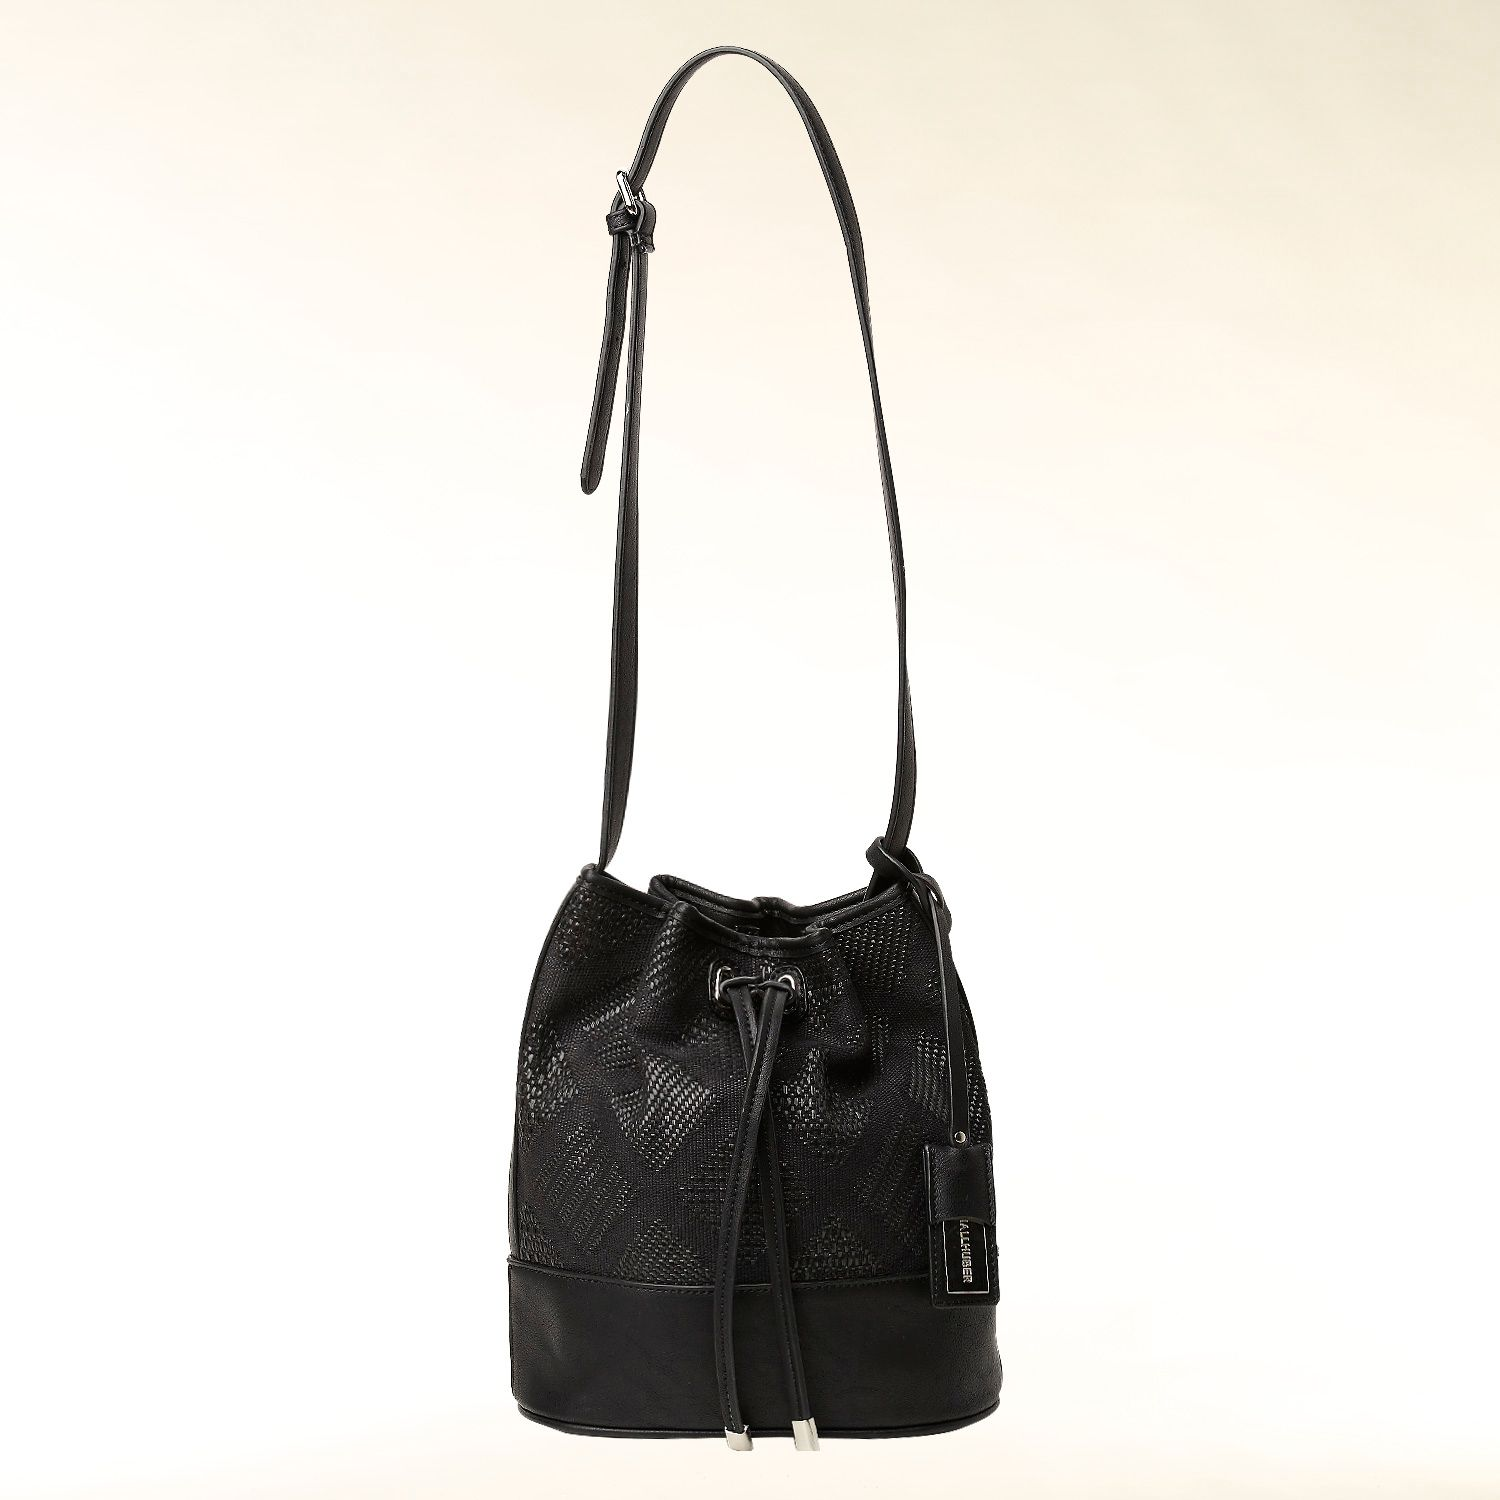 Jacquard print shoulder bag